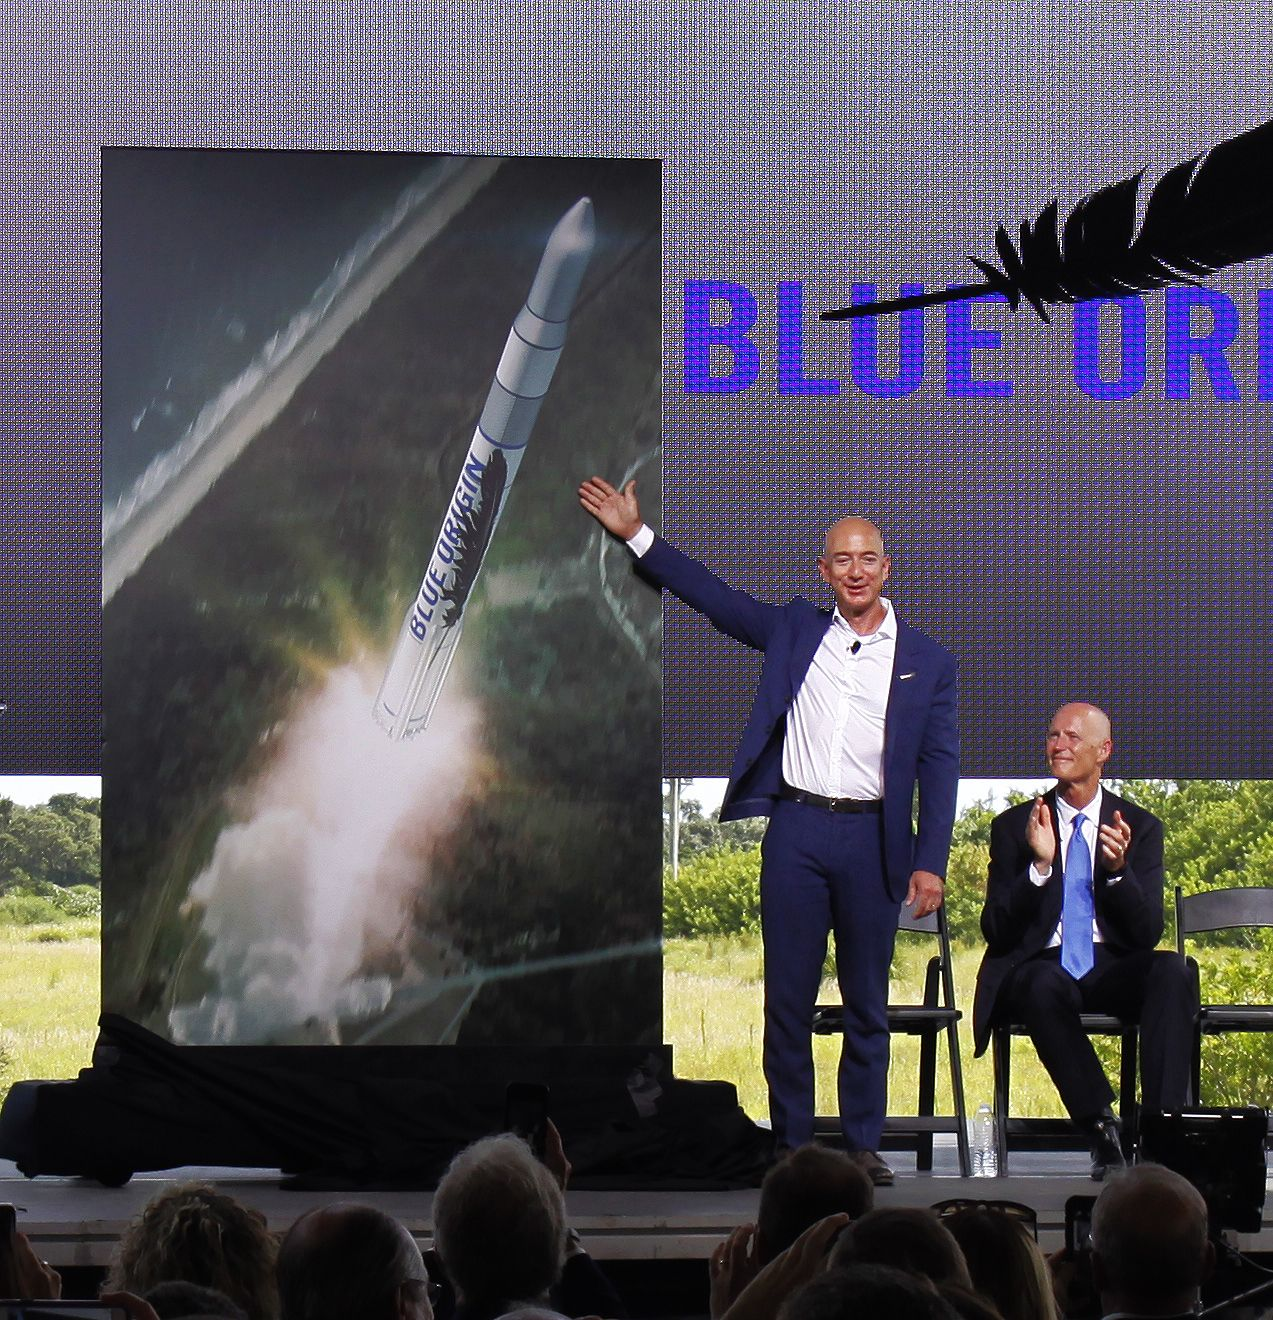 Jeff Bezos Unveils Blue Origin's Florida Launch Plans